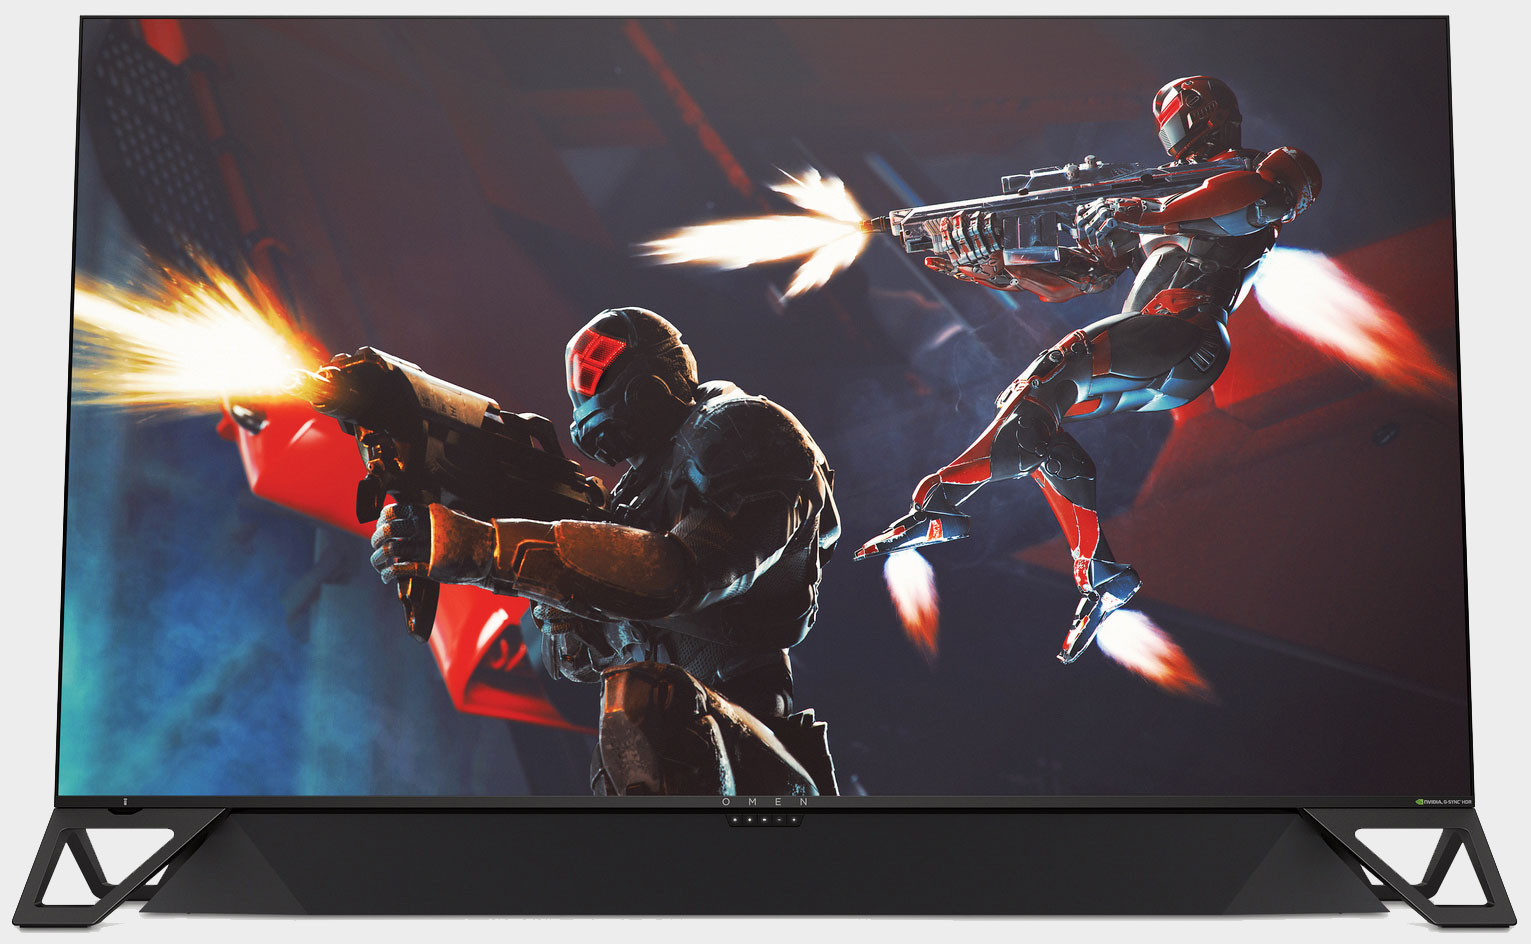 Nvidia's first big format gaming displays will set you back